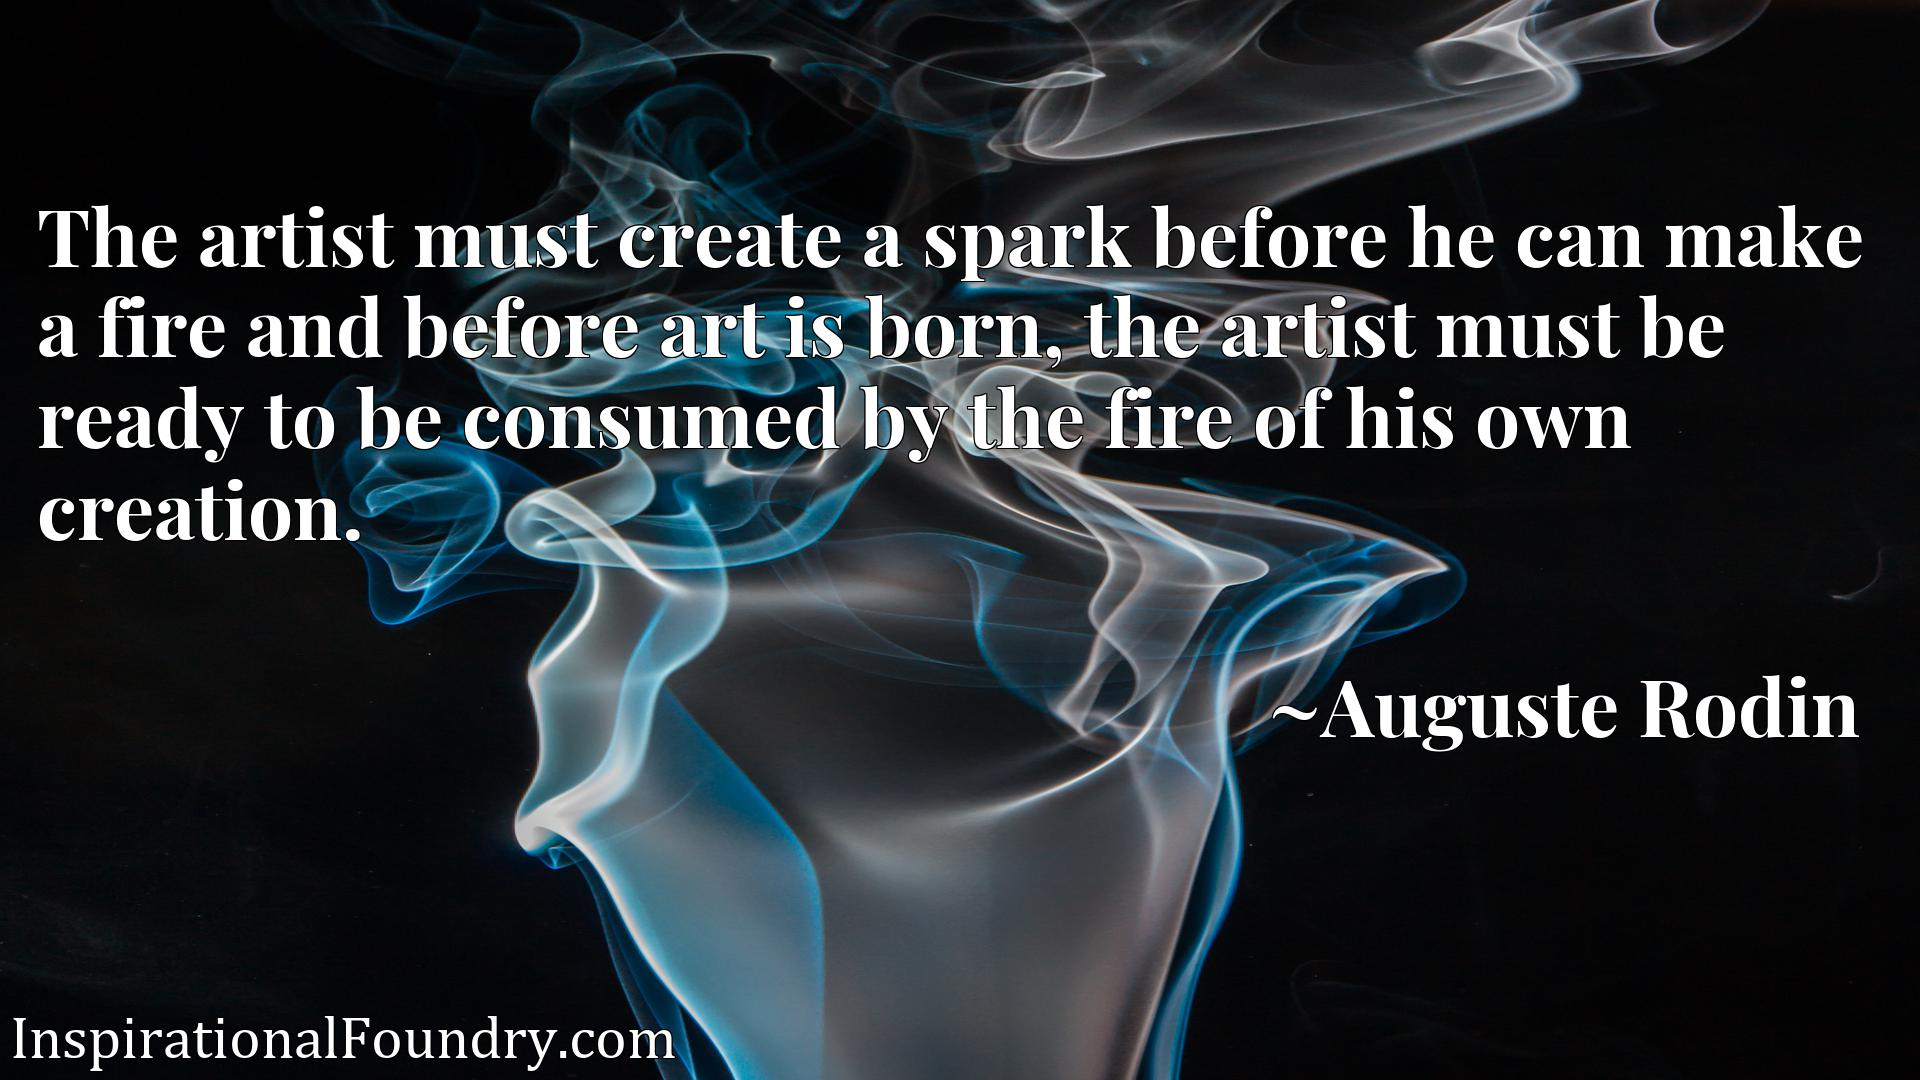 The artist must create a spark before he can make a fire and before art is born, the artist must be ready to be consumed by the fire of his own creation.